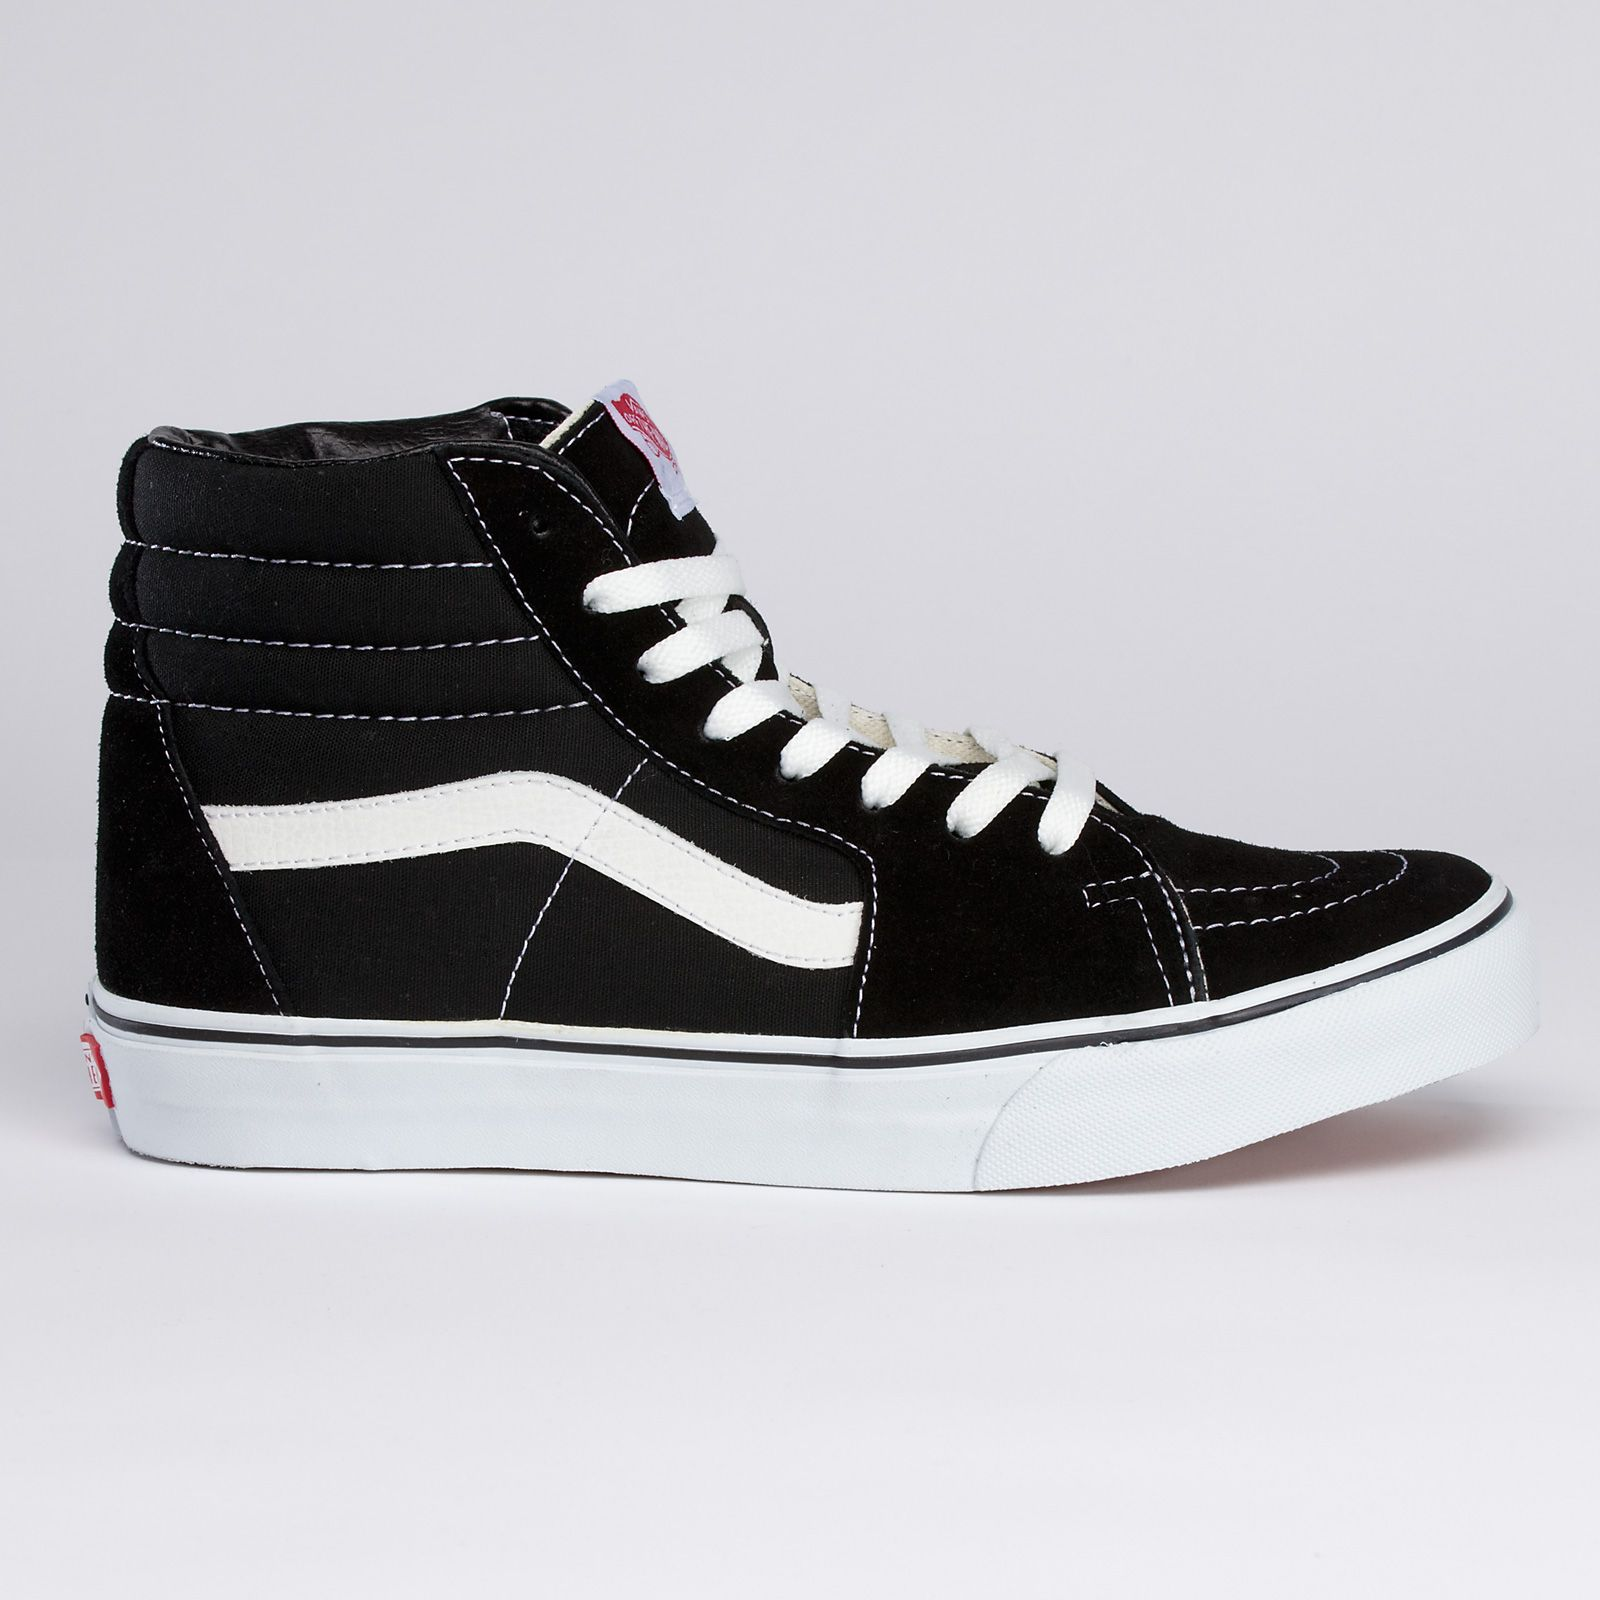 Vans Old school Hi tops, simply the best to skate!